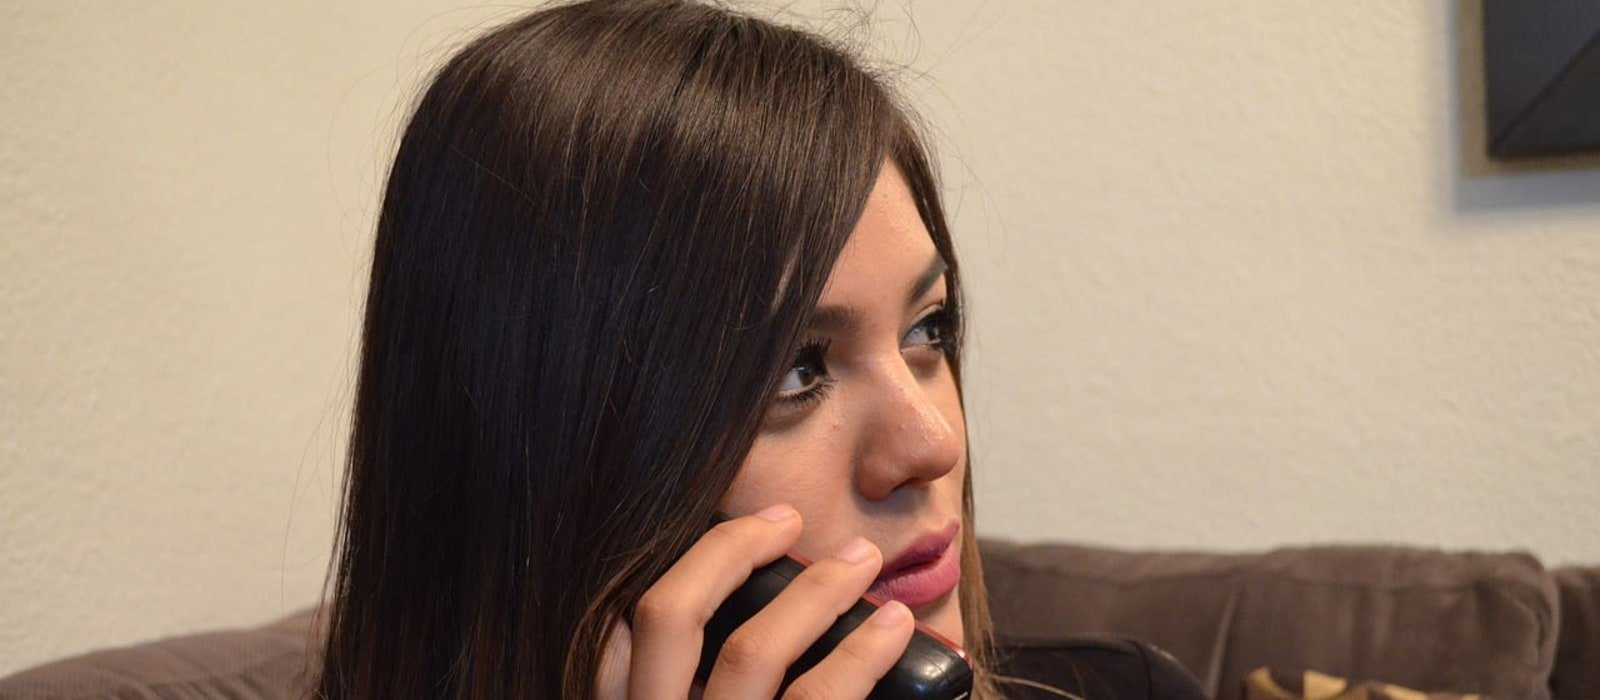 Image of a woman on the phone